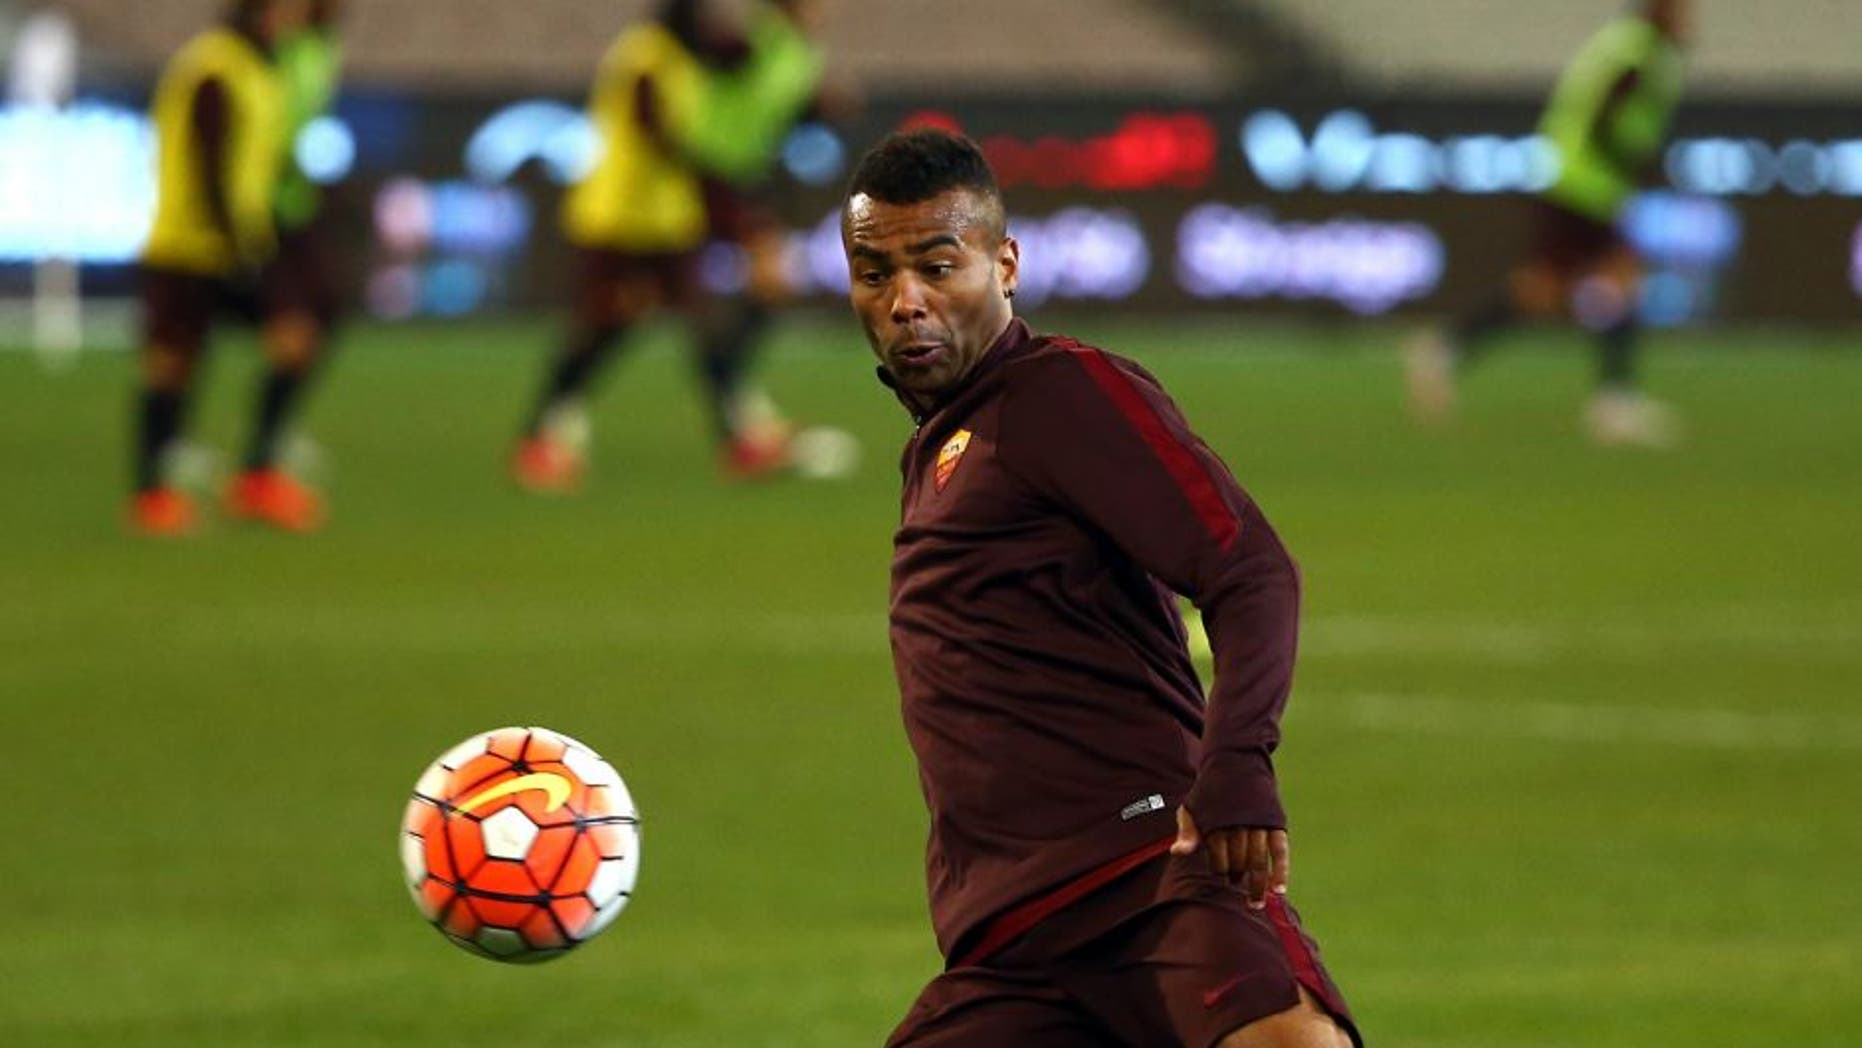 MELBOURNE, AUSTRALIA - JULY 17: Ashley Cole of AS Roma kicks the ball during an AS Roma training session at Melbourne Cricket Ground on July 17, 2015 in Melbourne, Australia. (Photo by Robert Cianflone/Getty Images)